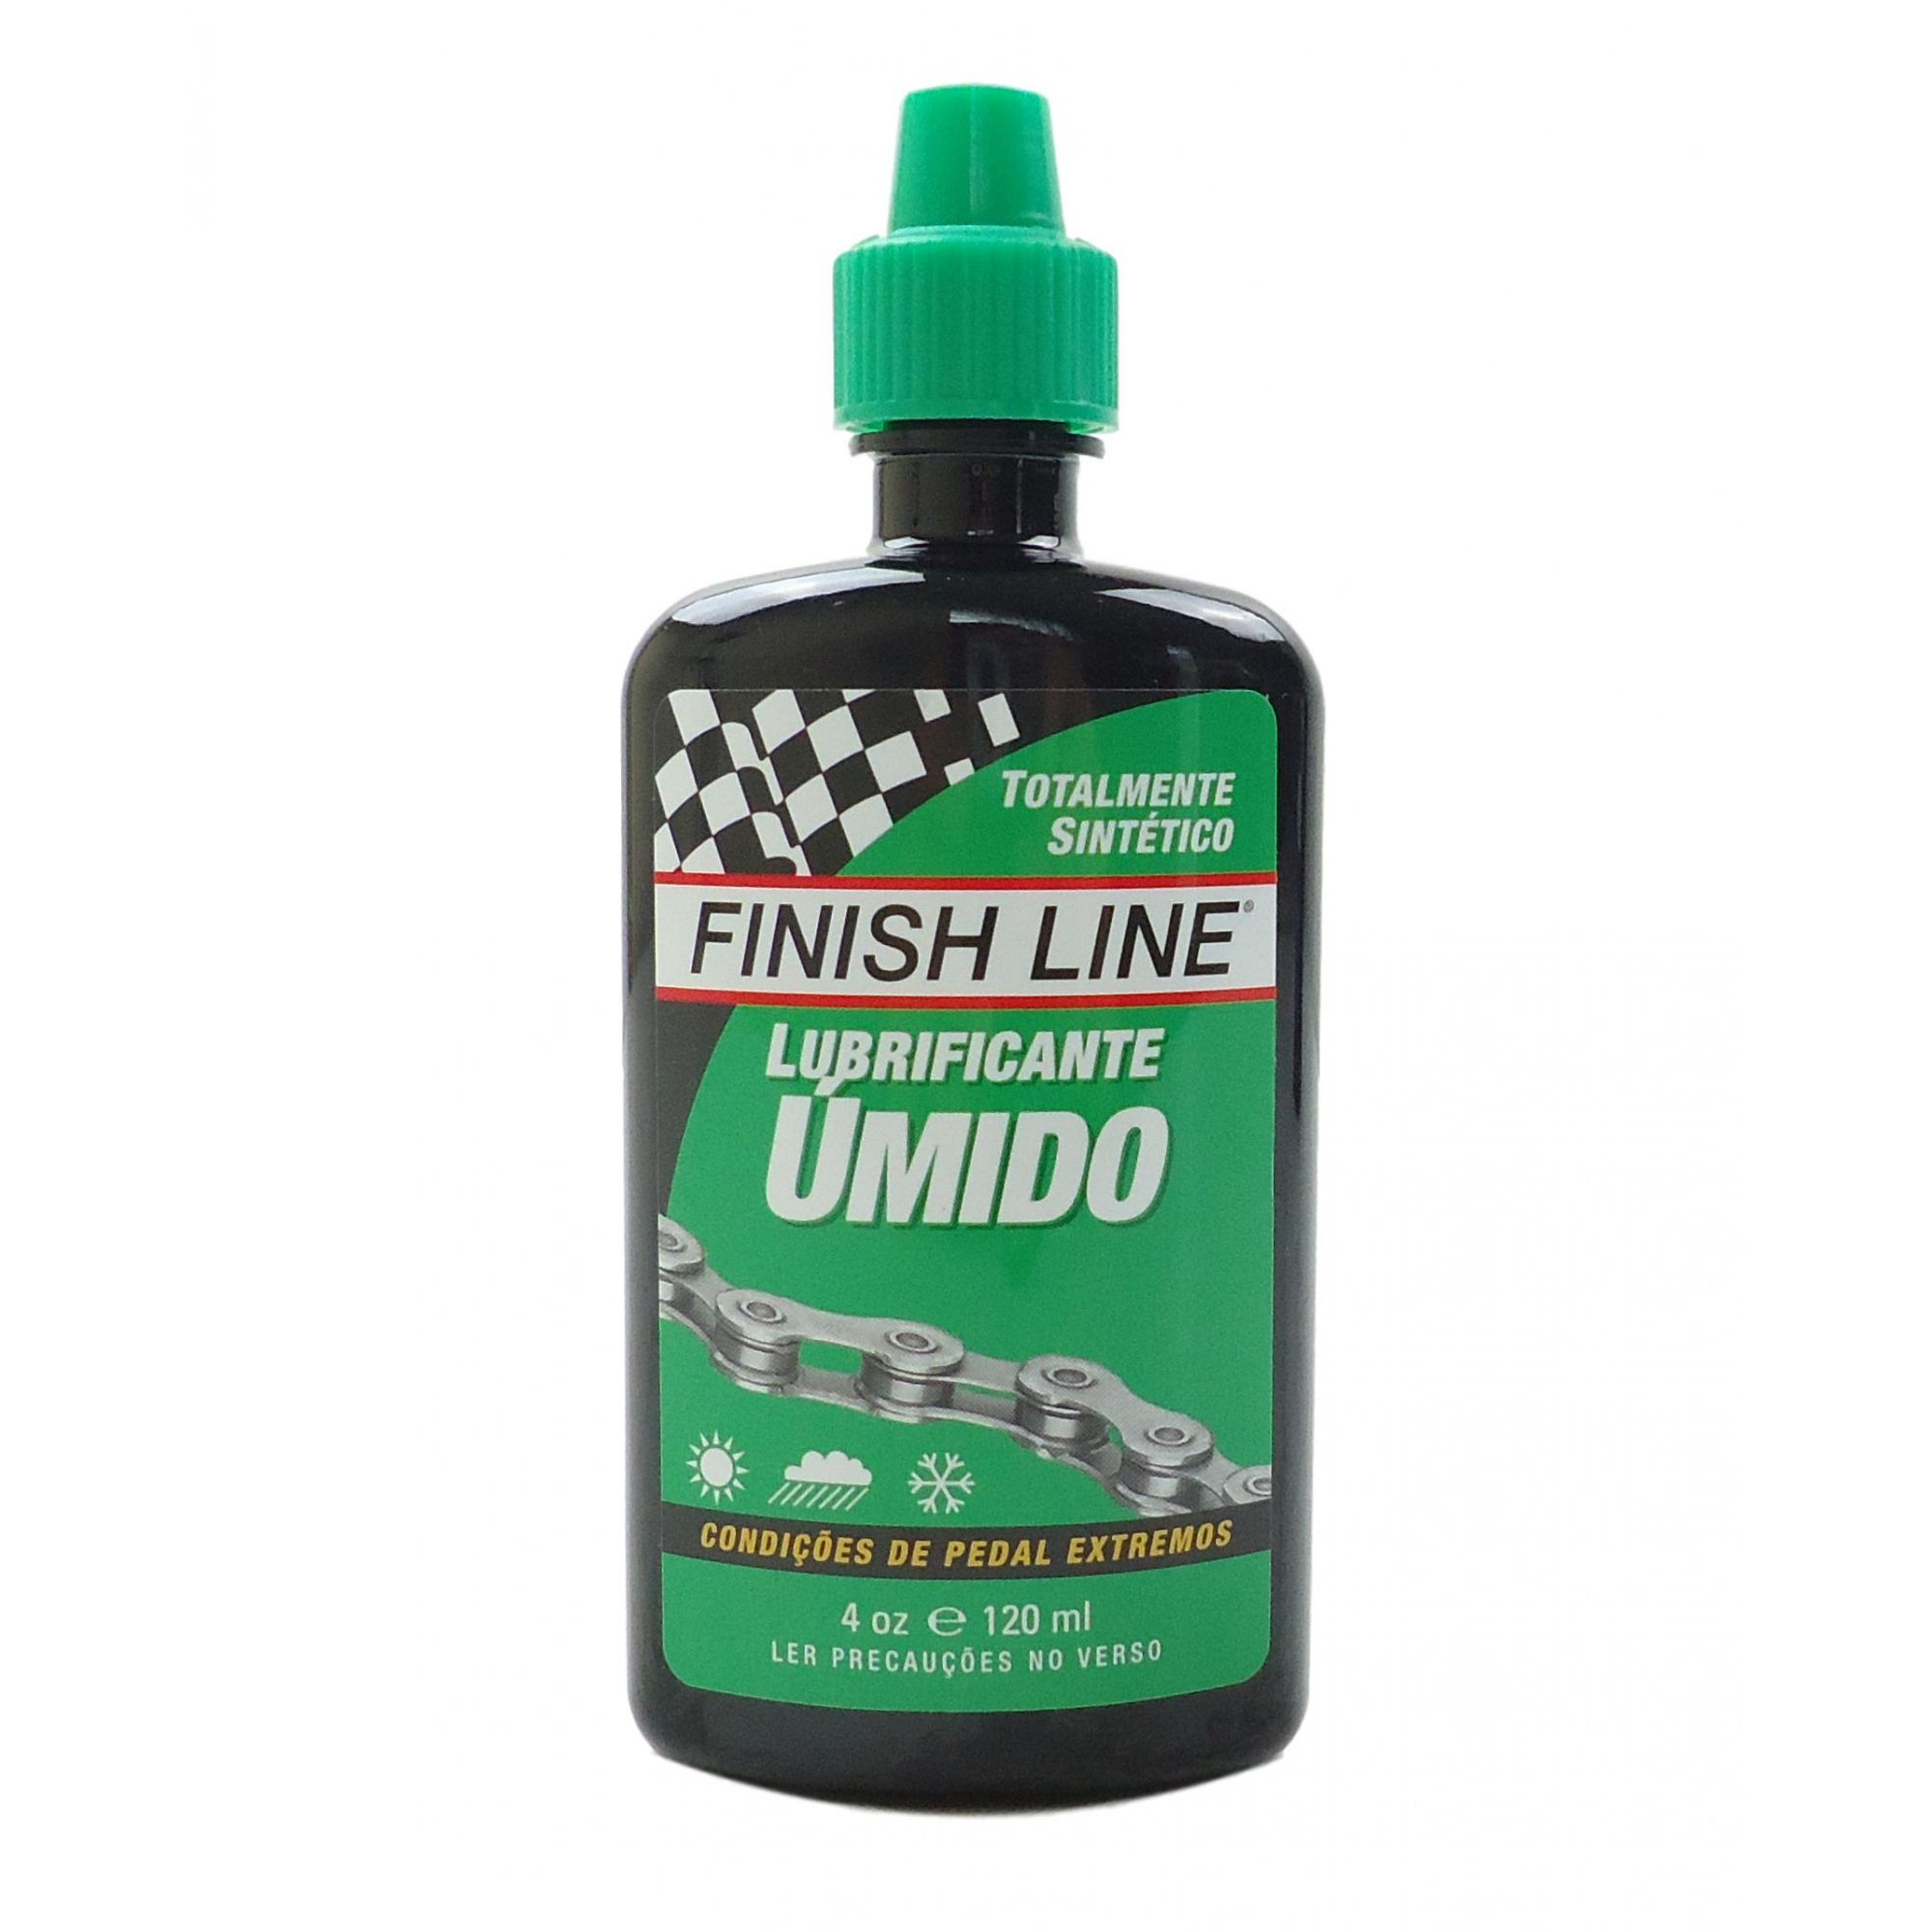 Óleo Lubrificante de Corrente Finish Line Cross Country Úmido Wet 120ml Verde Ideal Para Lama Chuva Barro